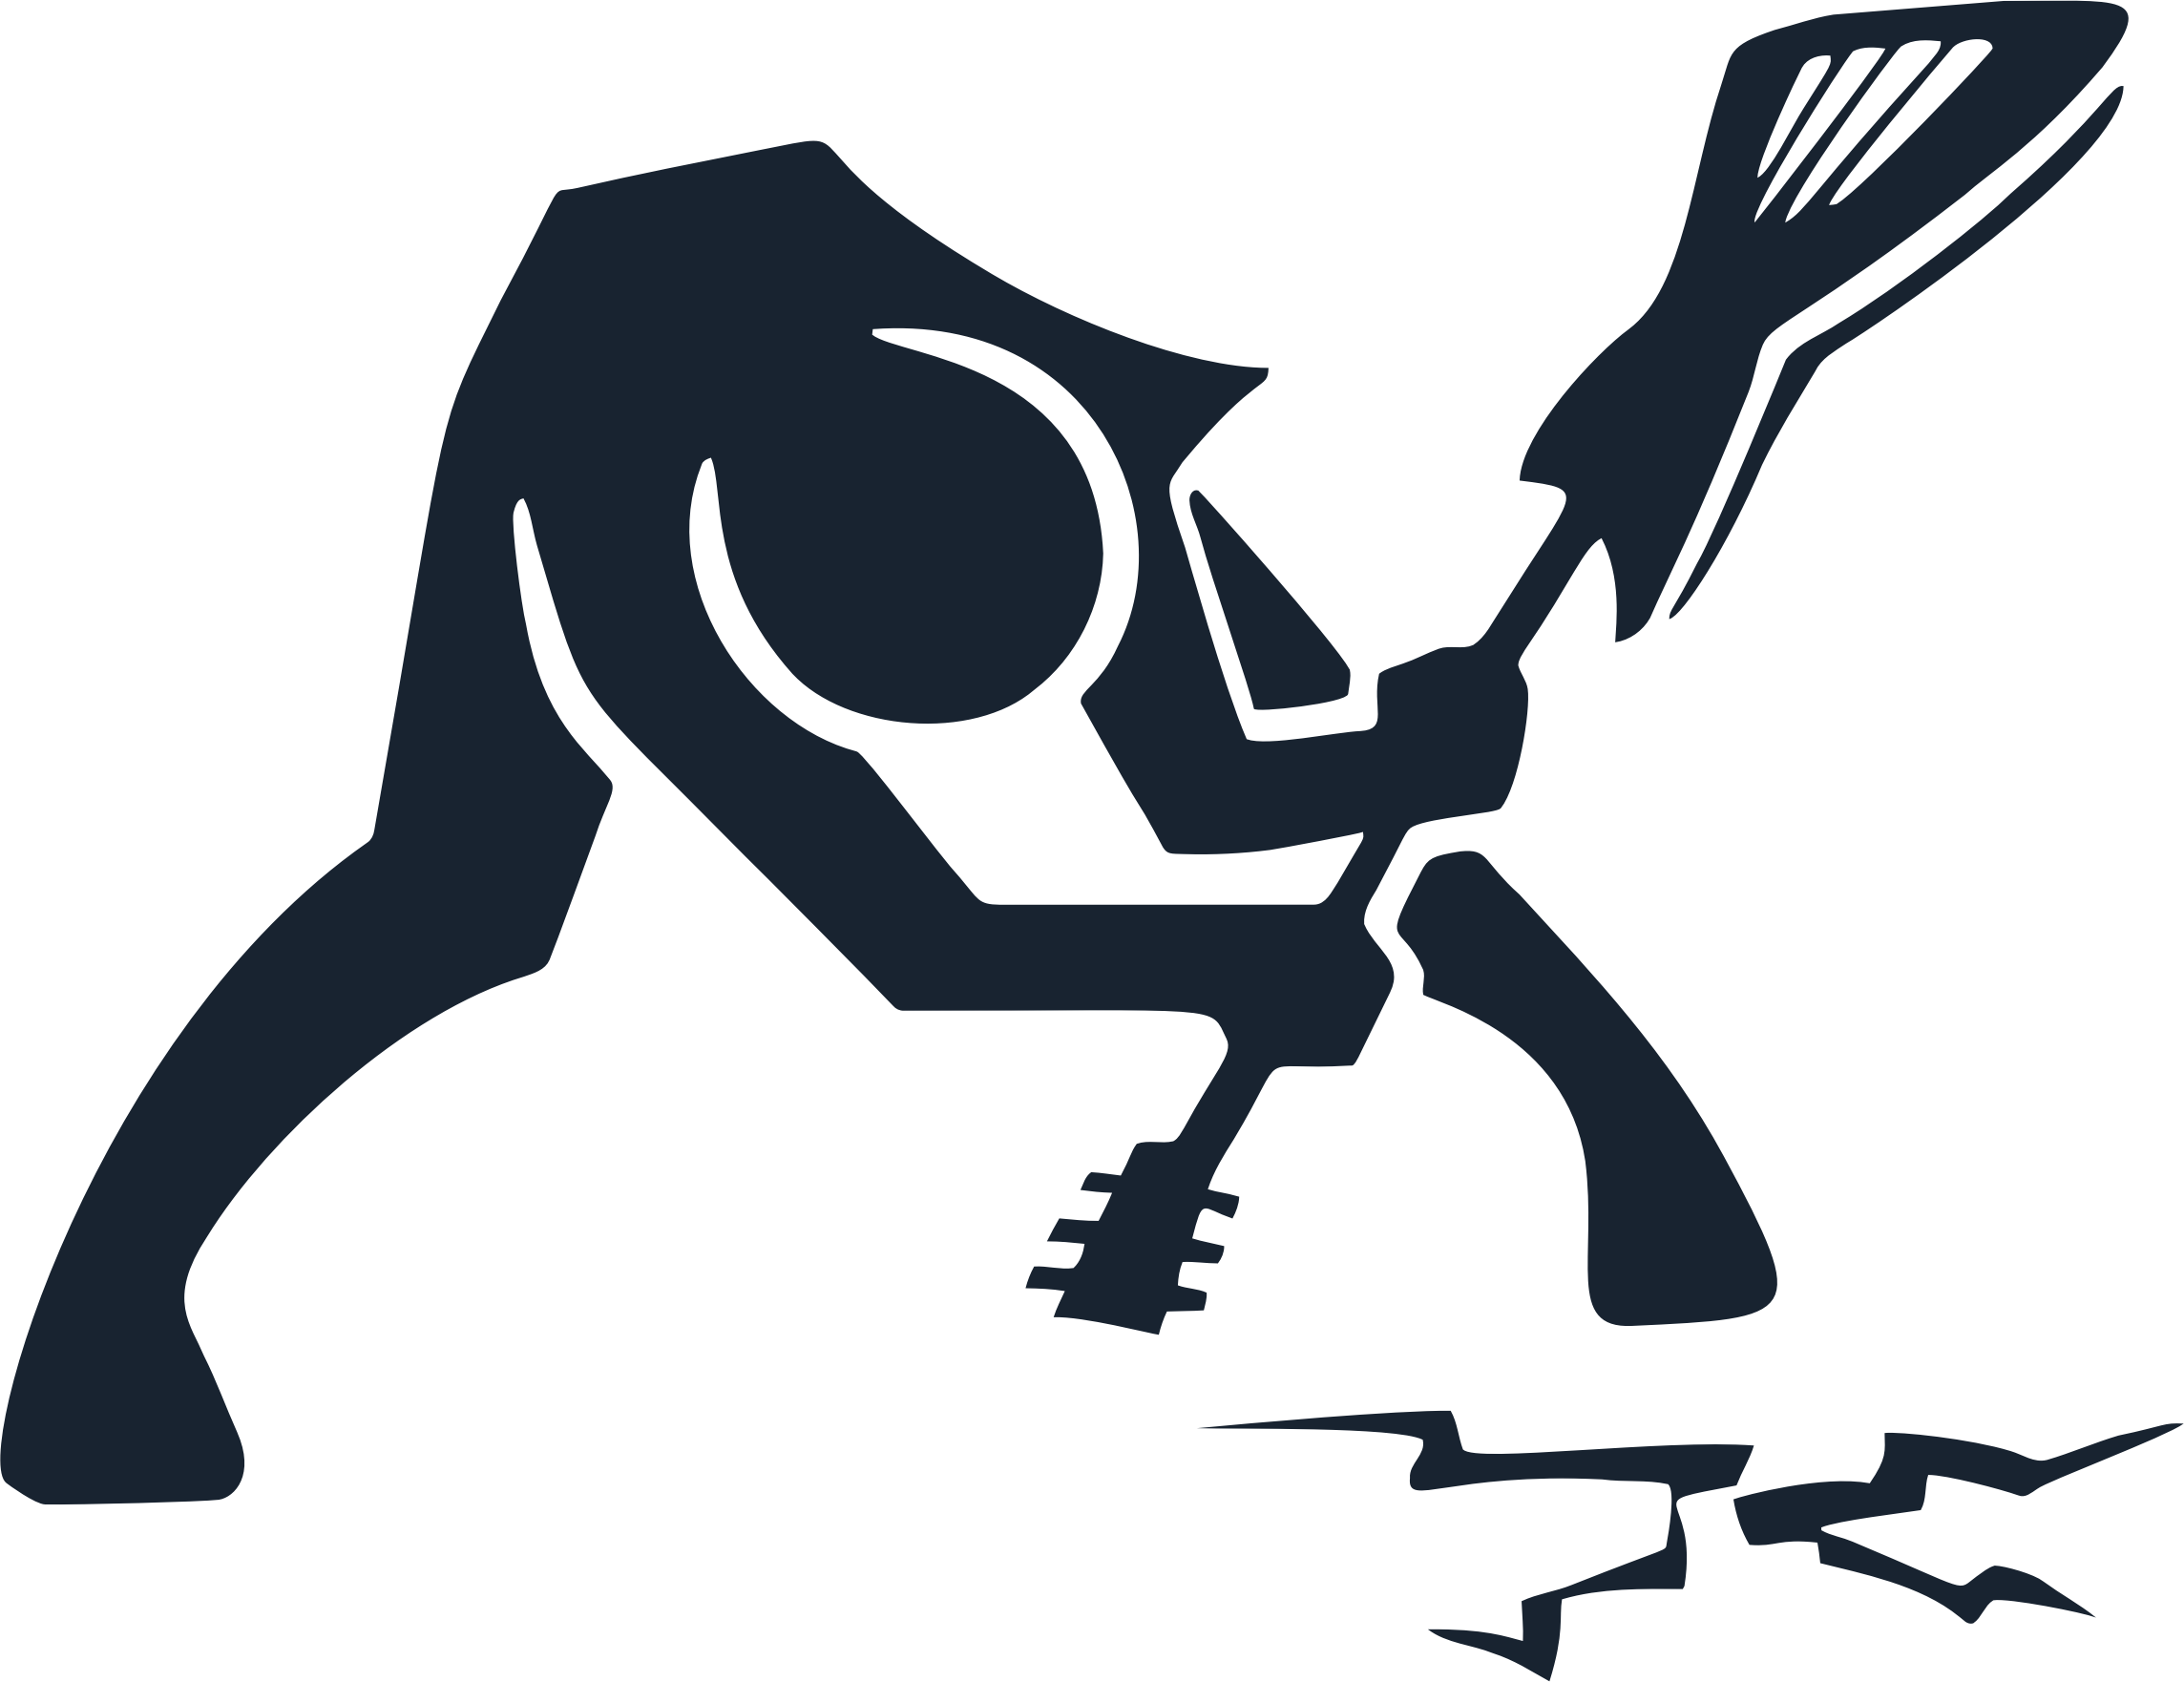 Poverty clipart silhouette. Breaking ground with guitar